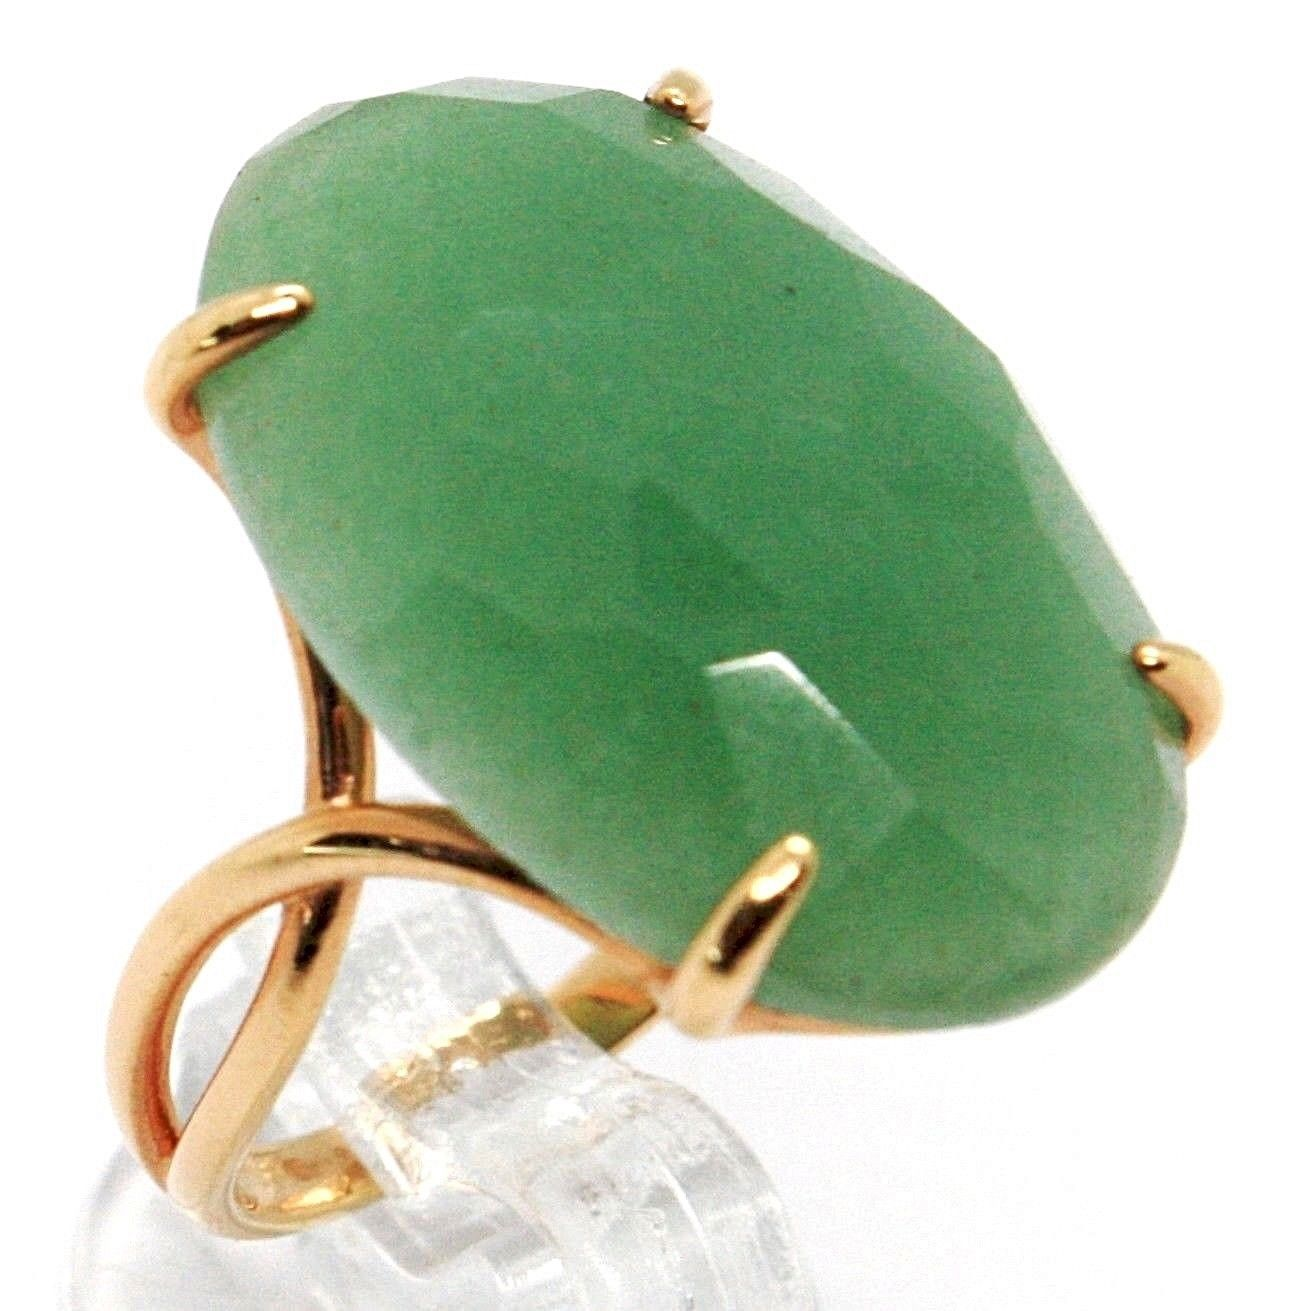 SOLID 18K ROSE GOLD RING, BIG GREEN AVENTURINE, CUSHION OVAL CUT MADE IN ITALY